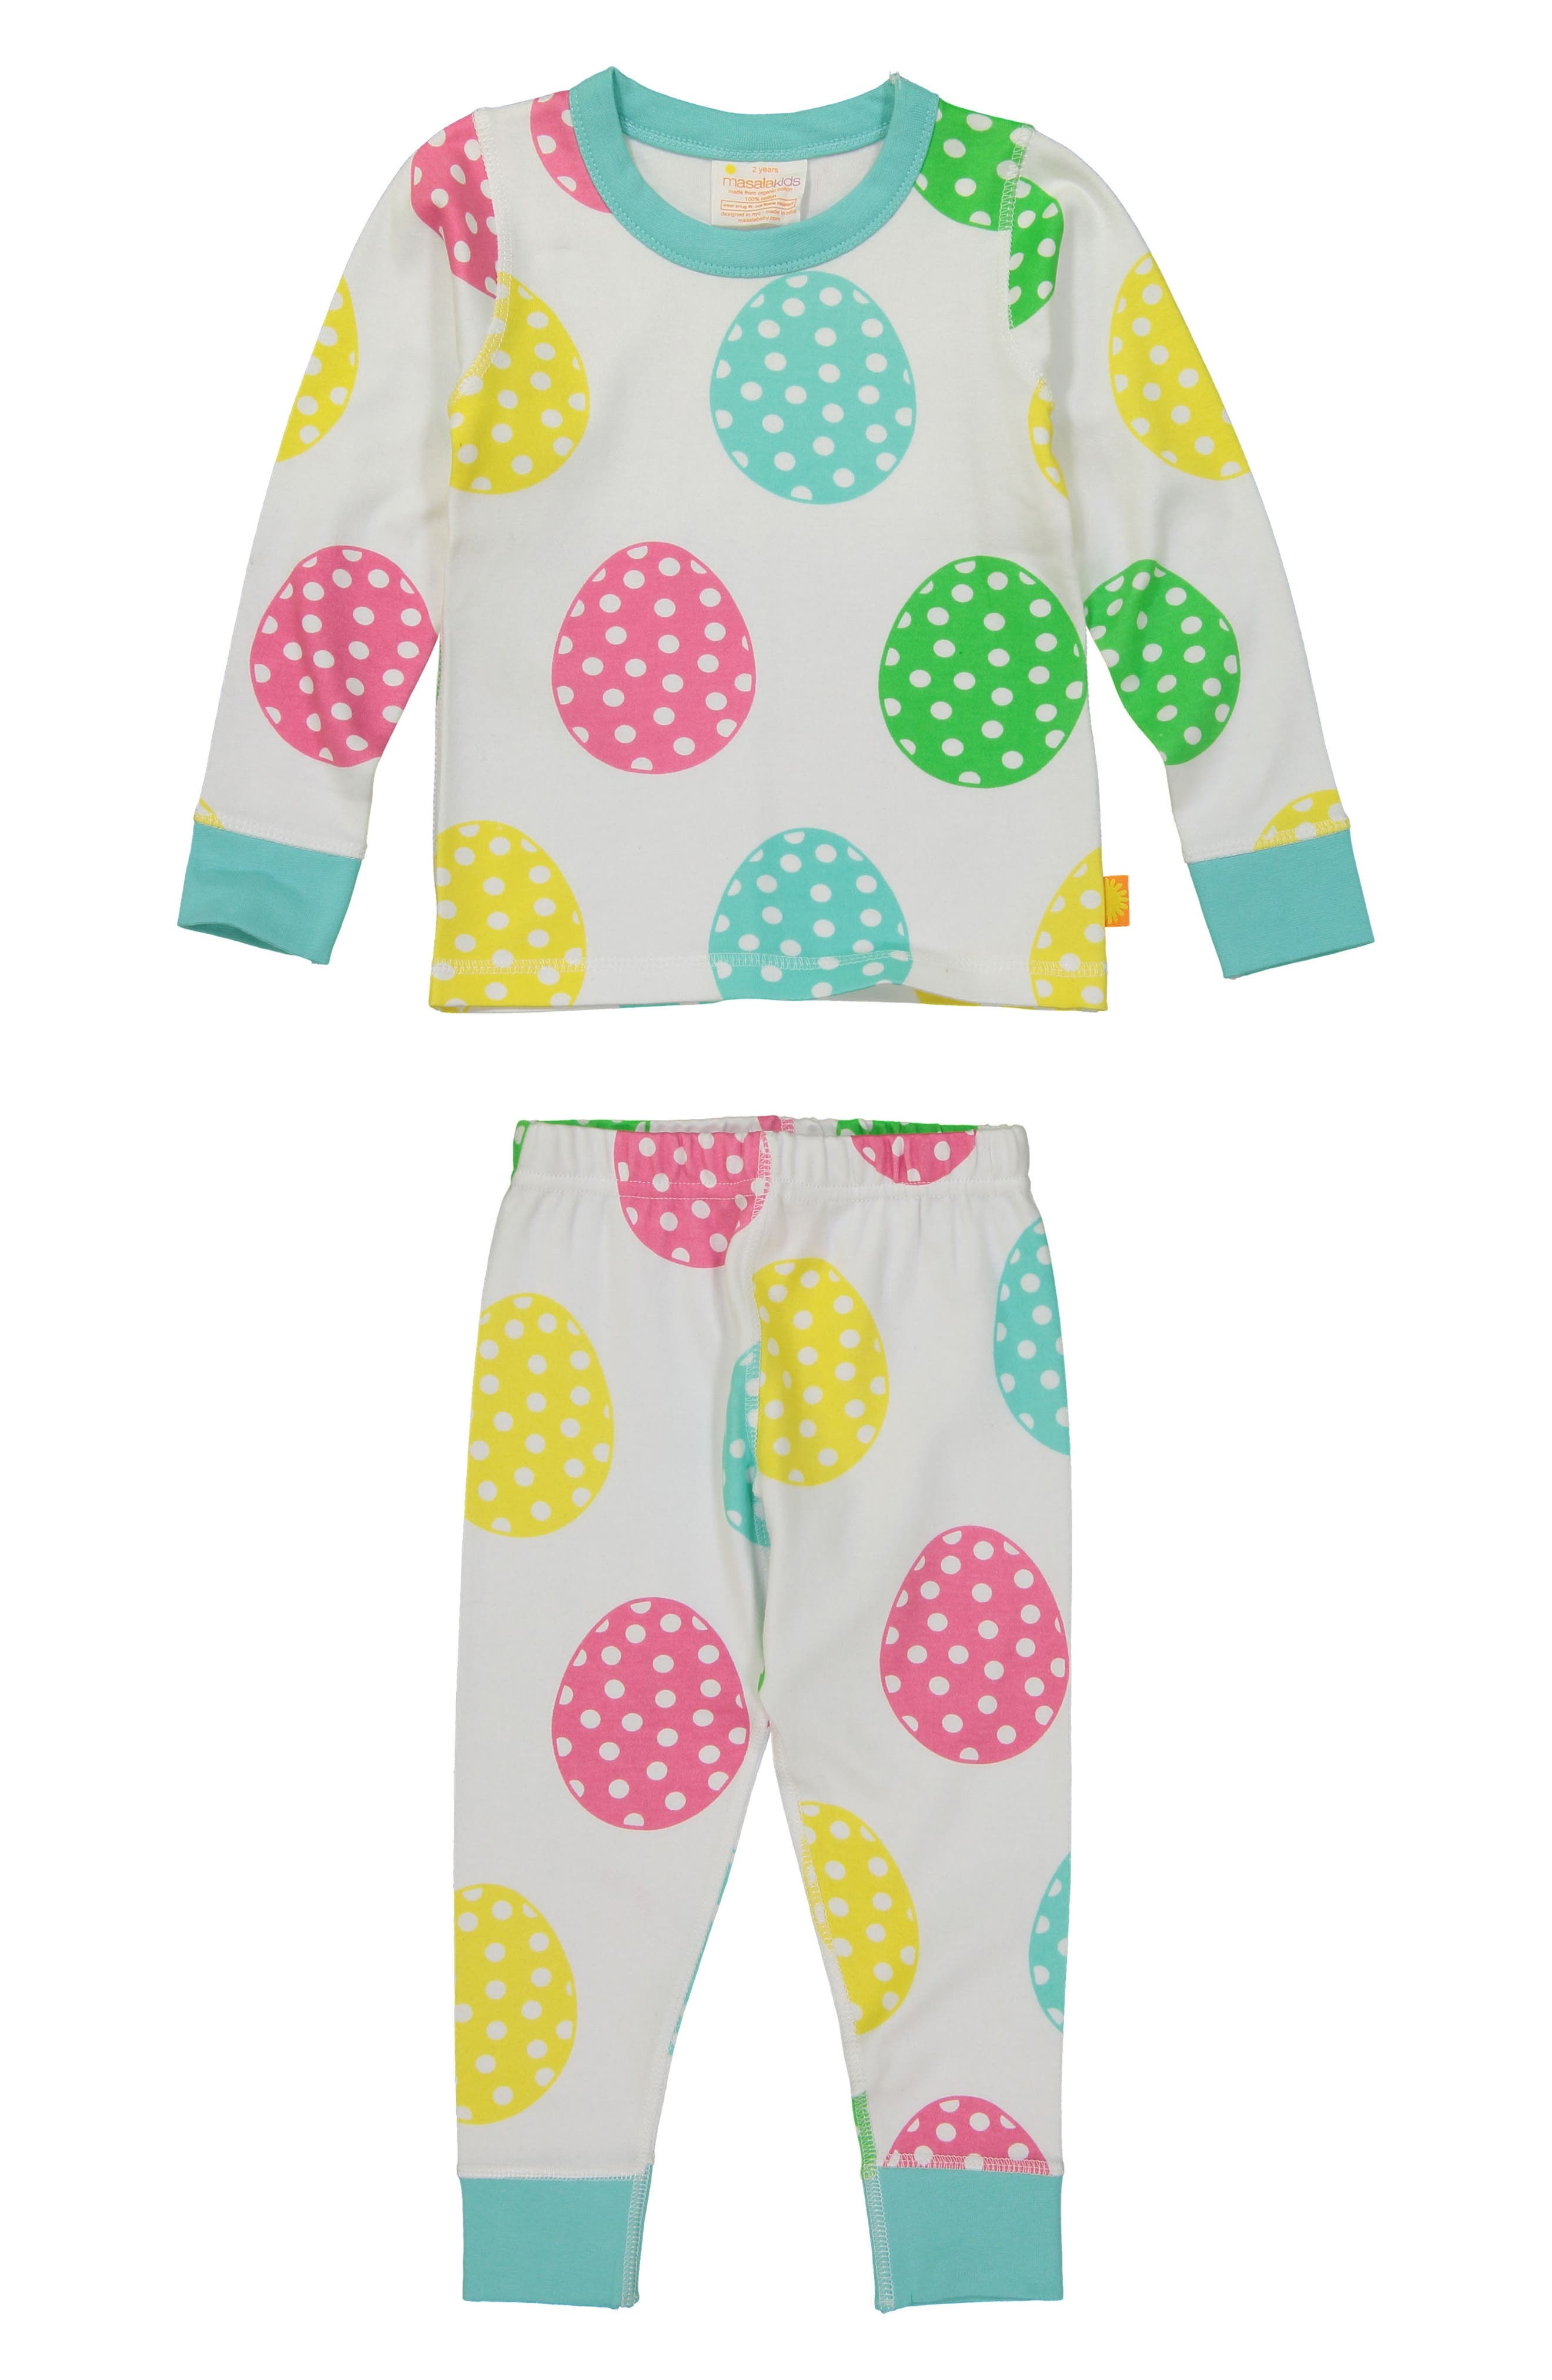 Rainbow Fitted Two-Piece Organic Cotton Pajamas,                             Main thumbnail 1, color,                             White Multi